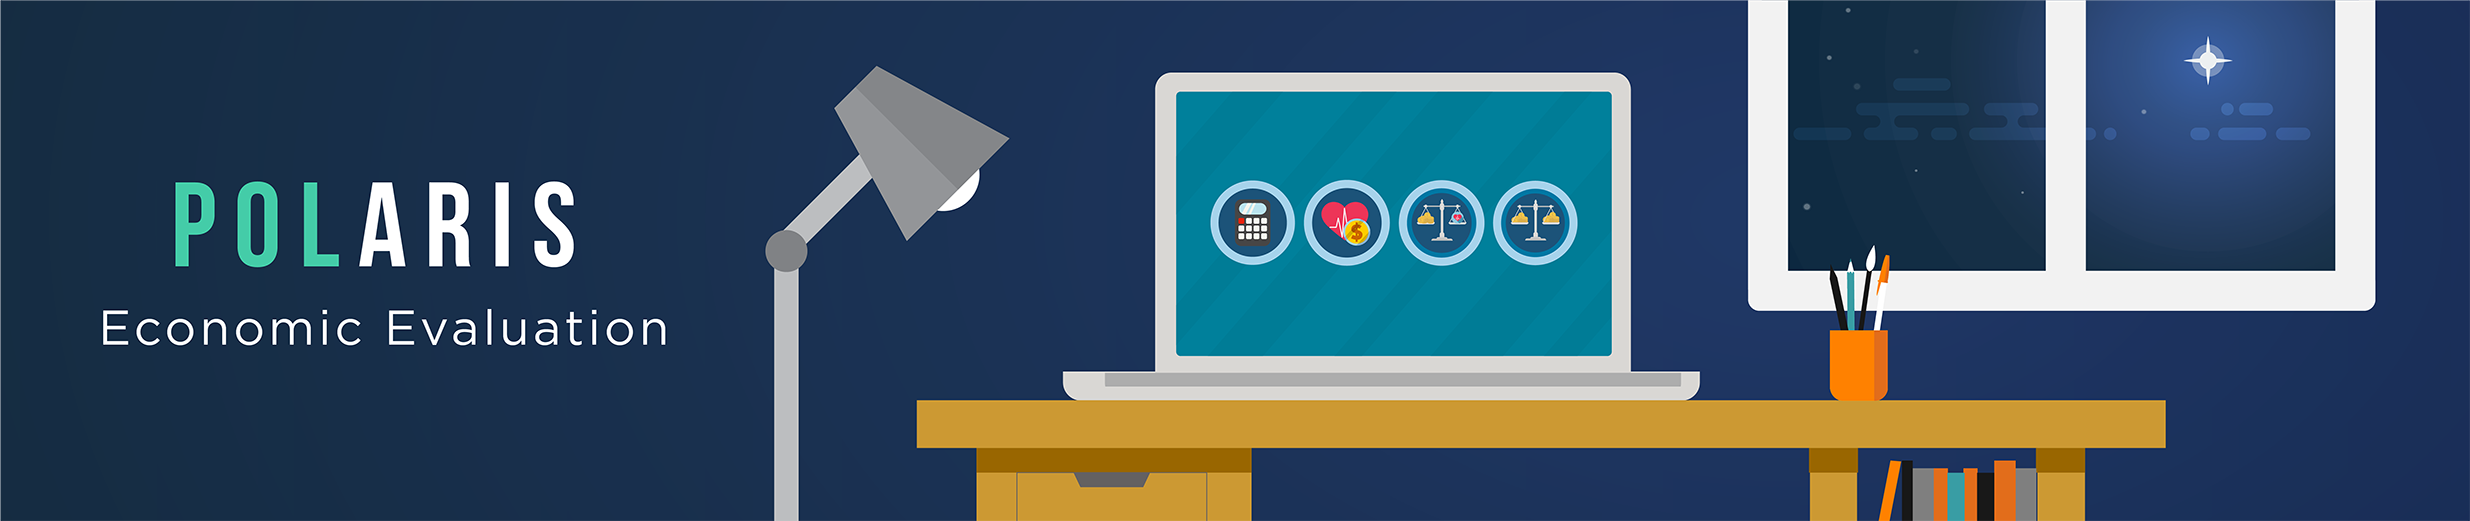 Banner at the the top of the page that says 'POLARIS Economic Evaluation' and has an illustration of a laptop on a desk with a screen that includes four icons, one for each section of the website